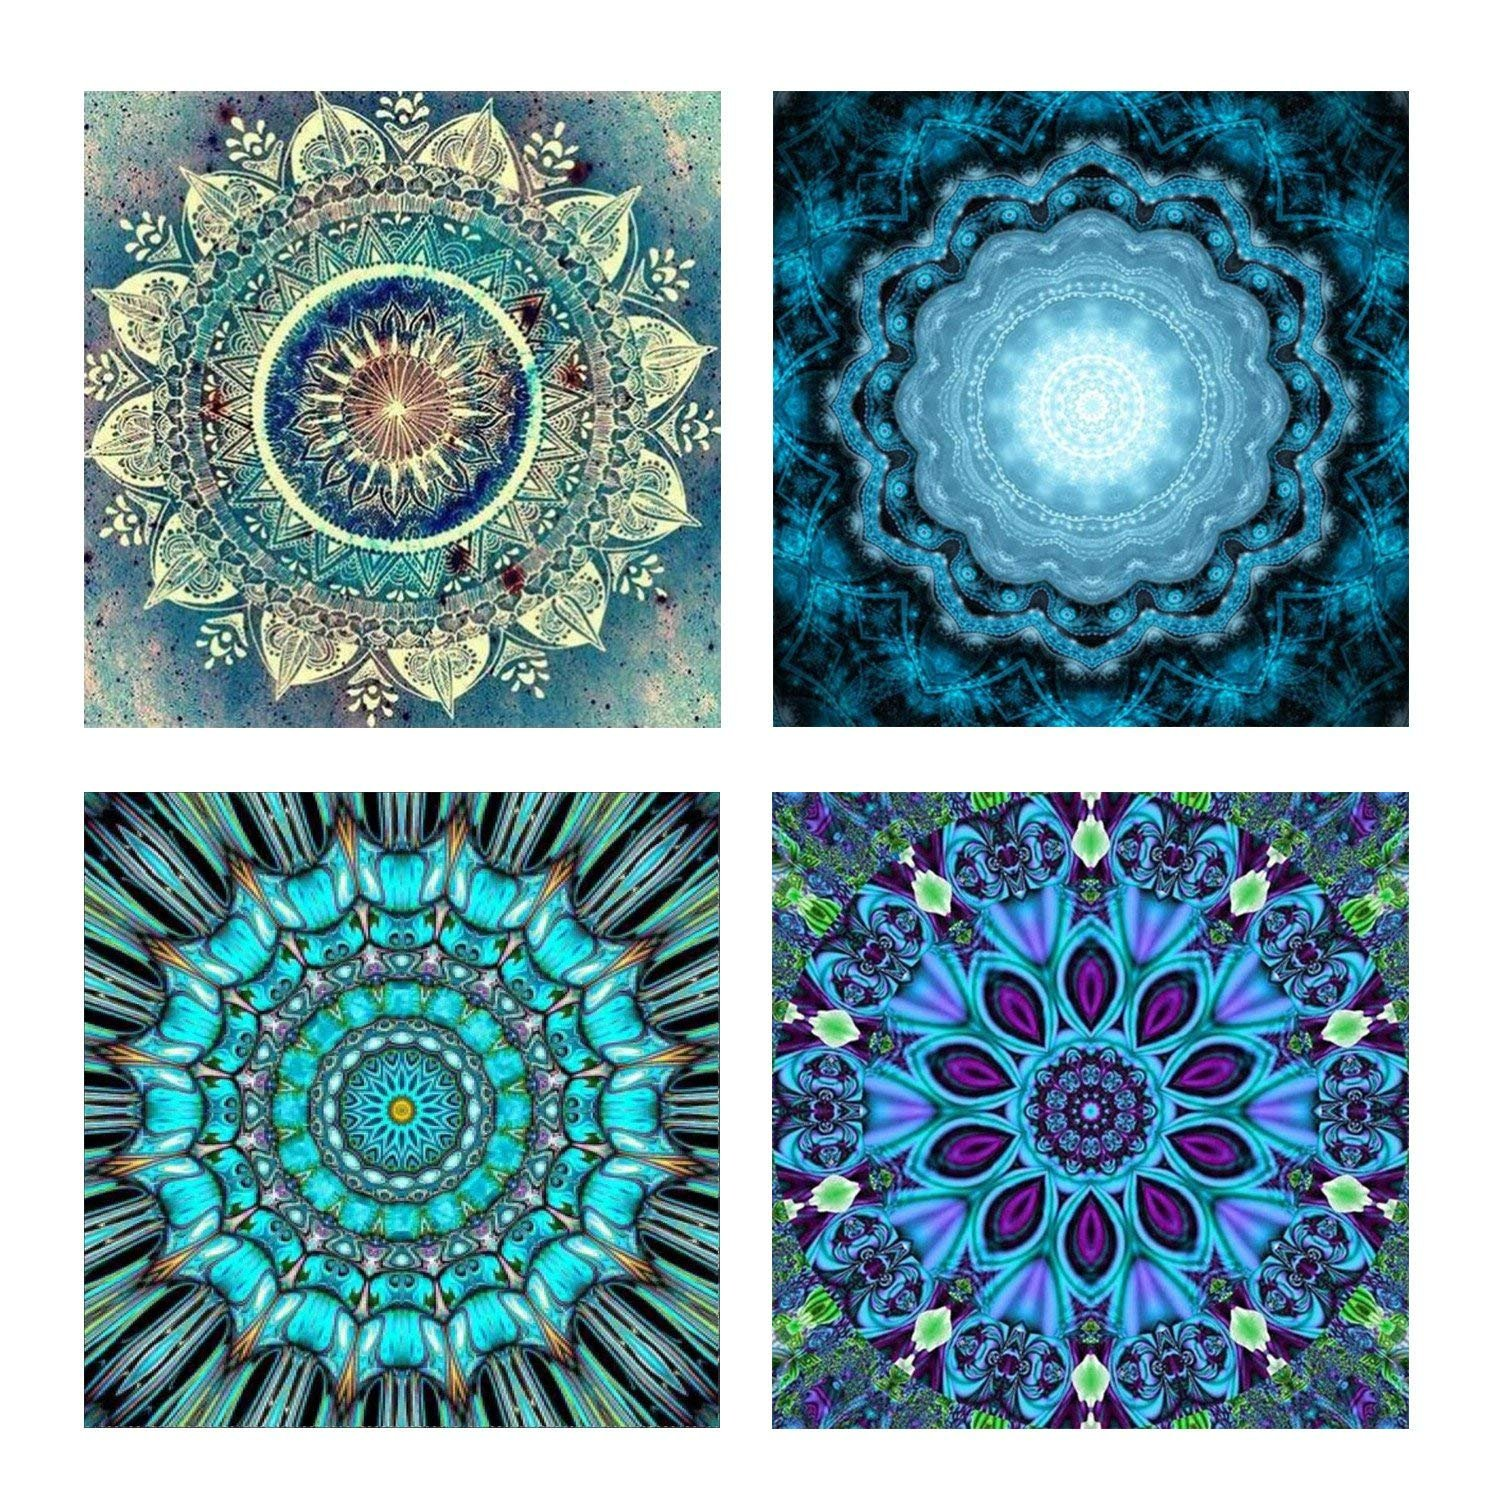 4 Pack 5D DIY Diamond Painting Set Decorating Cabinet Table Stickers Crystal Rhinestone Diamond Embroidery Paintings Pictures For Study Room, Flower Painting(25X25CM/9.8X9.8inch) M-Aimee